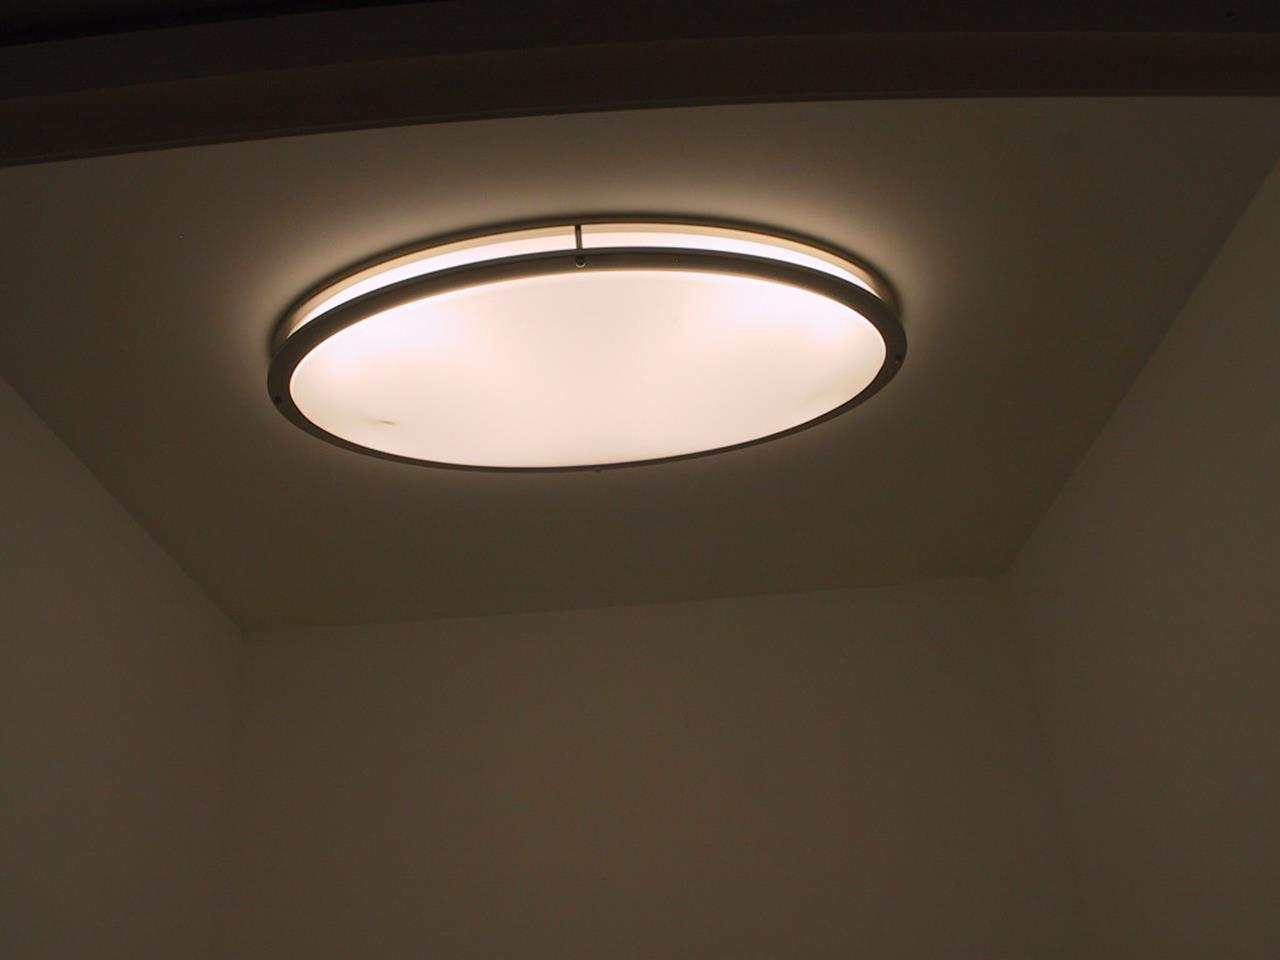 Light Fixtures Ideas For Laundry Room 19